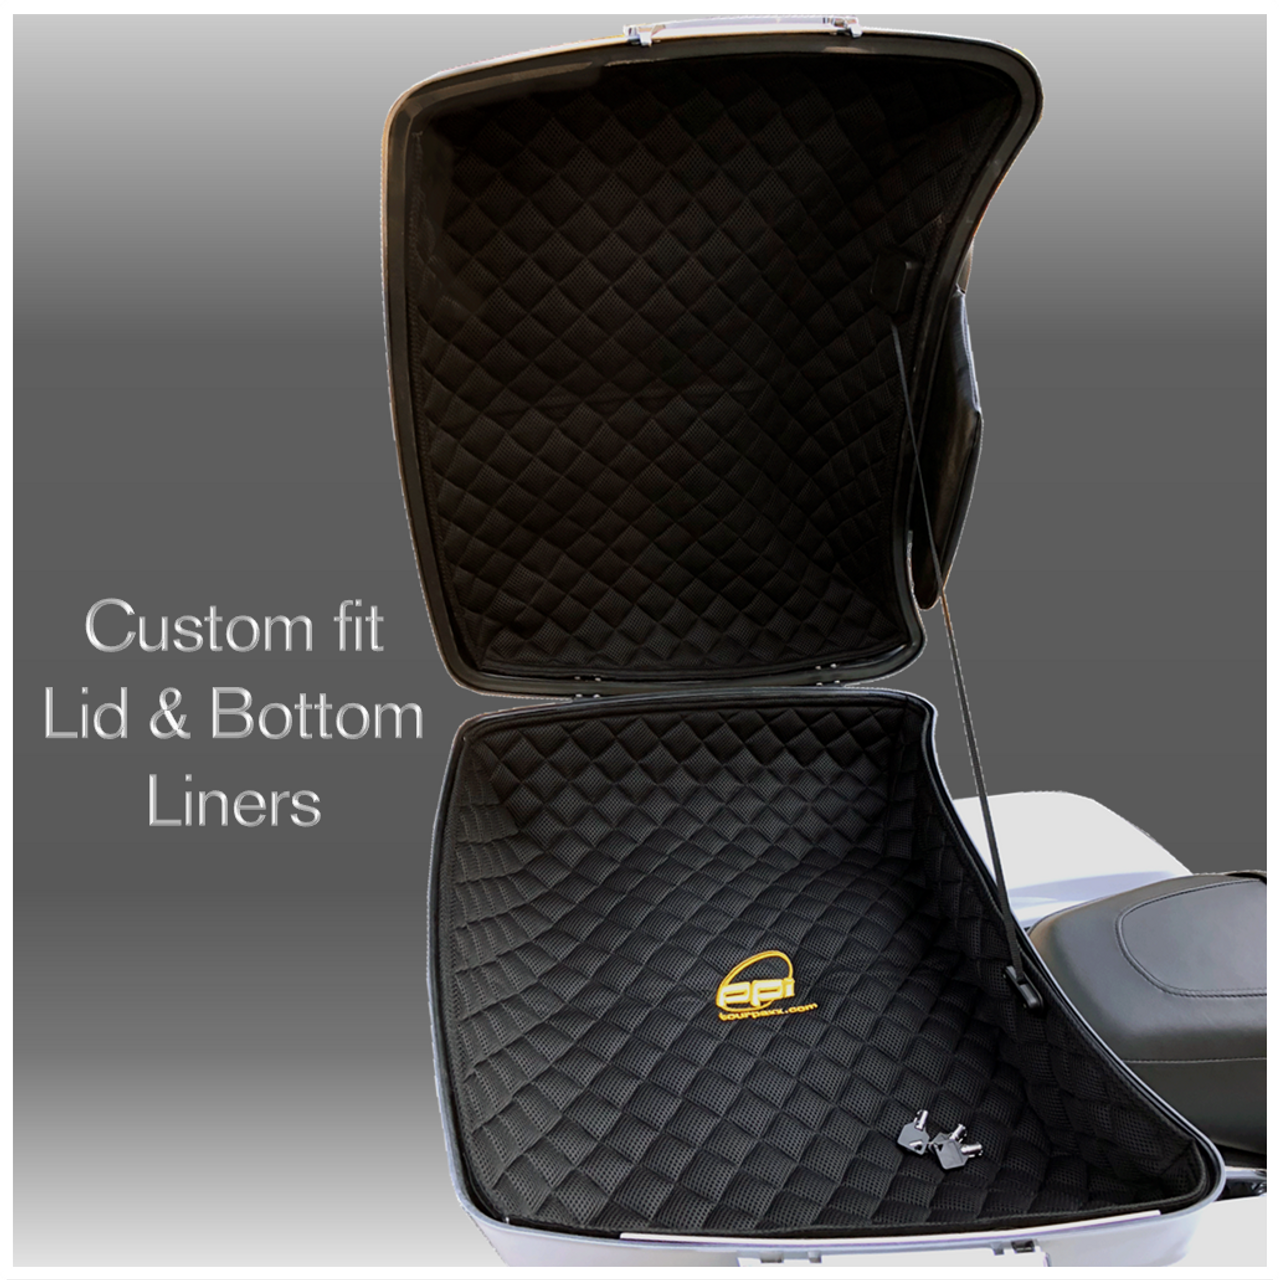 Quilted Fabric Slim Tour Pack Lid & Bottom liners (tour pack not included)